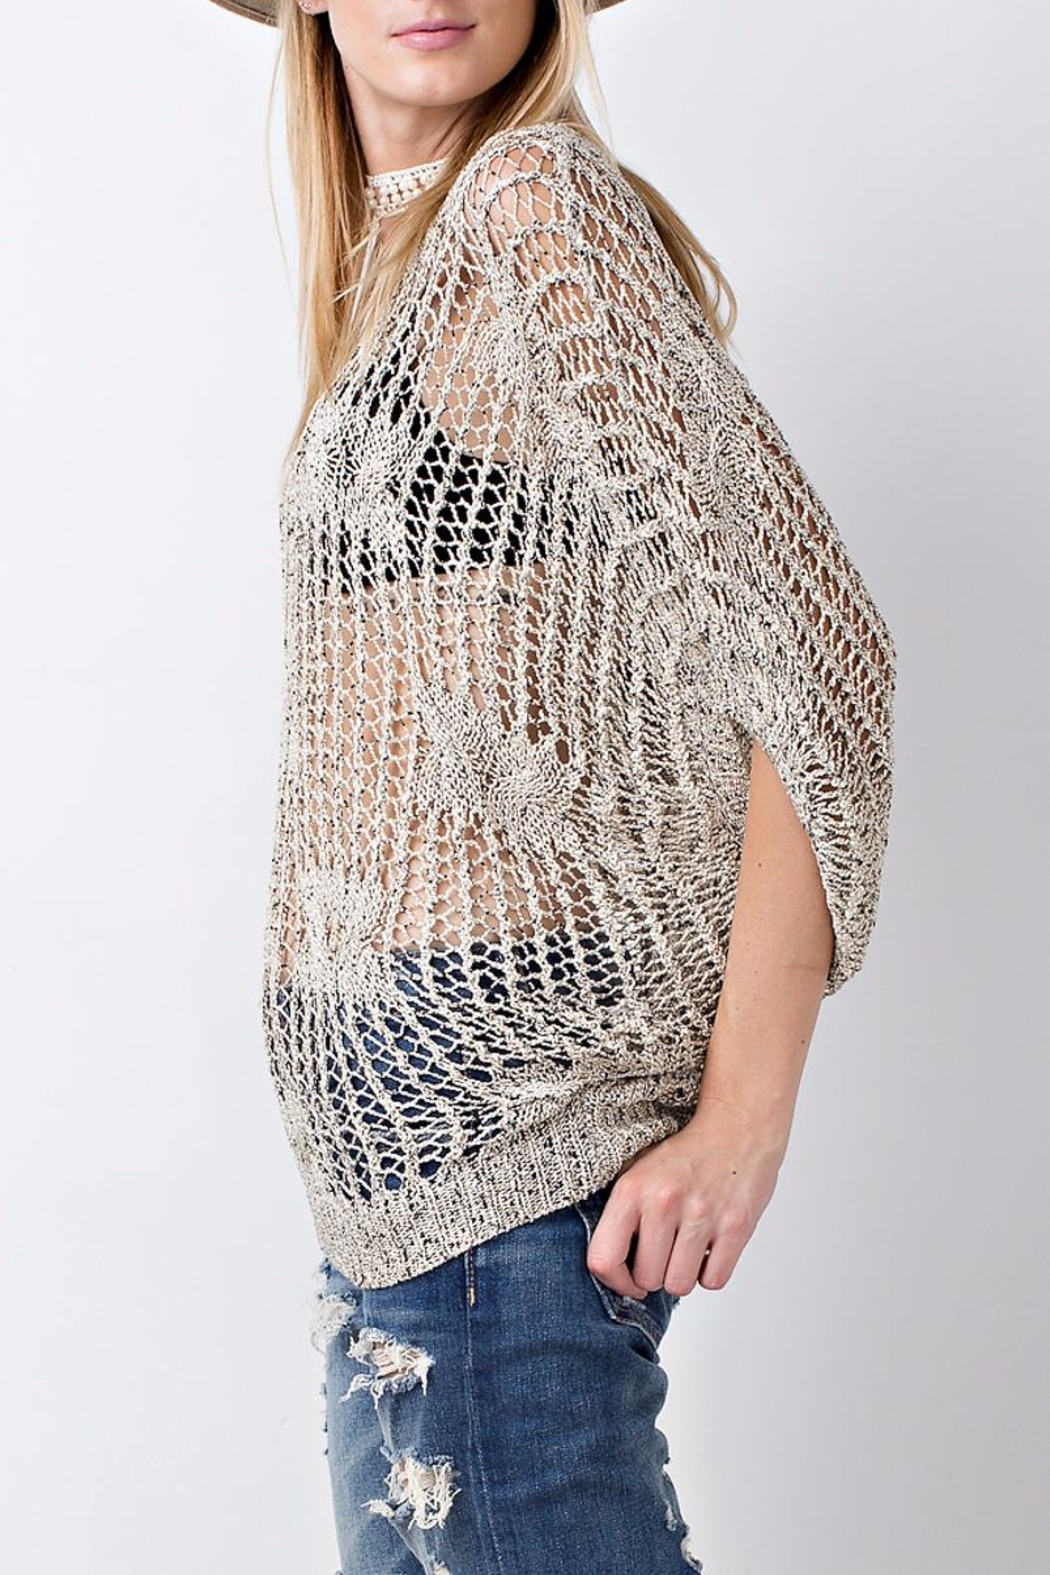 People Outfitter Crochet Knit Sweater Top - Side Cropped Image